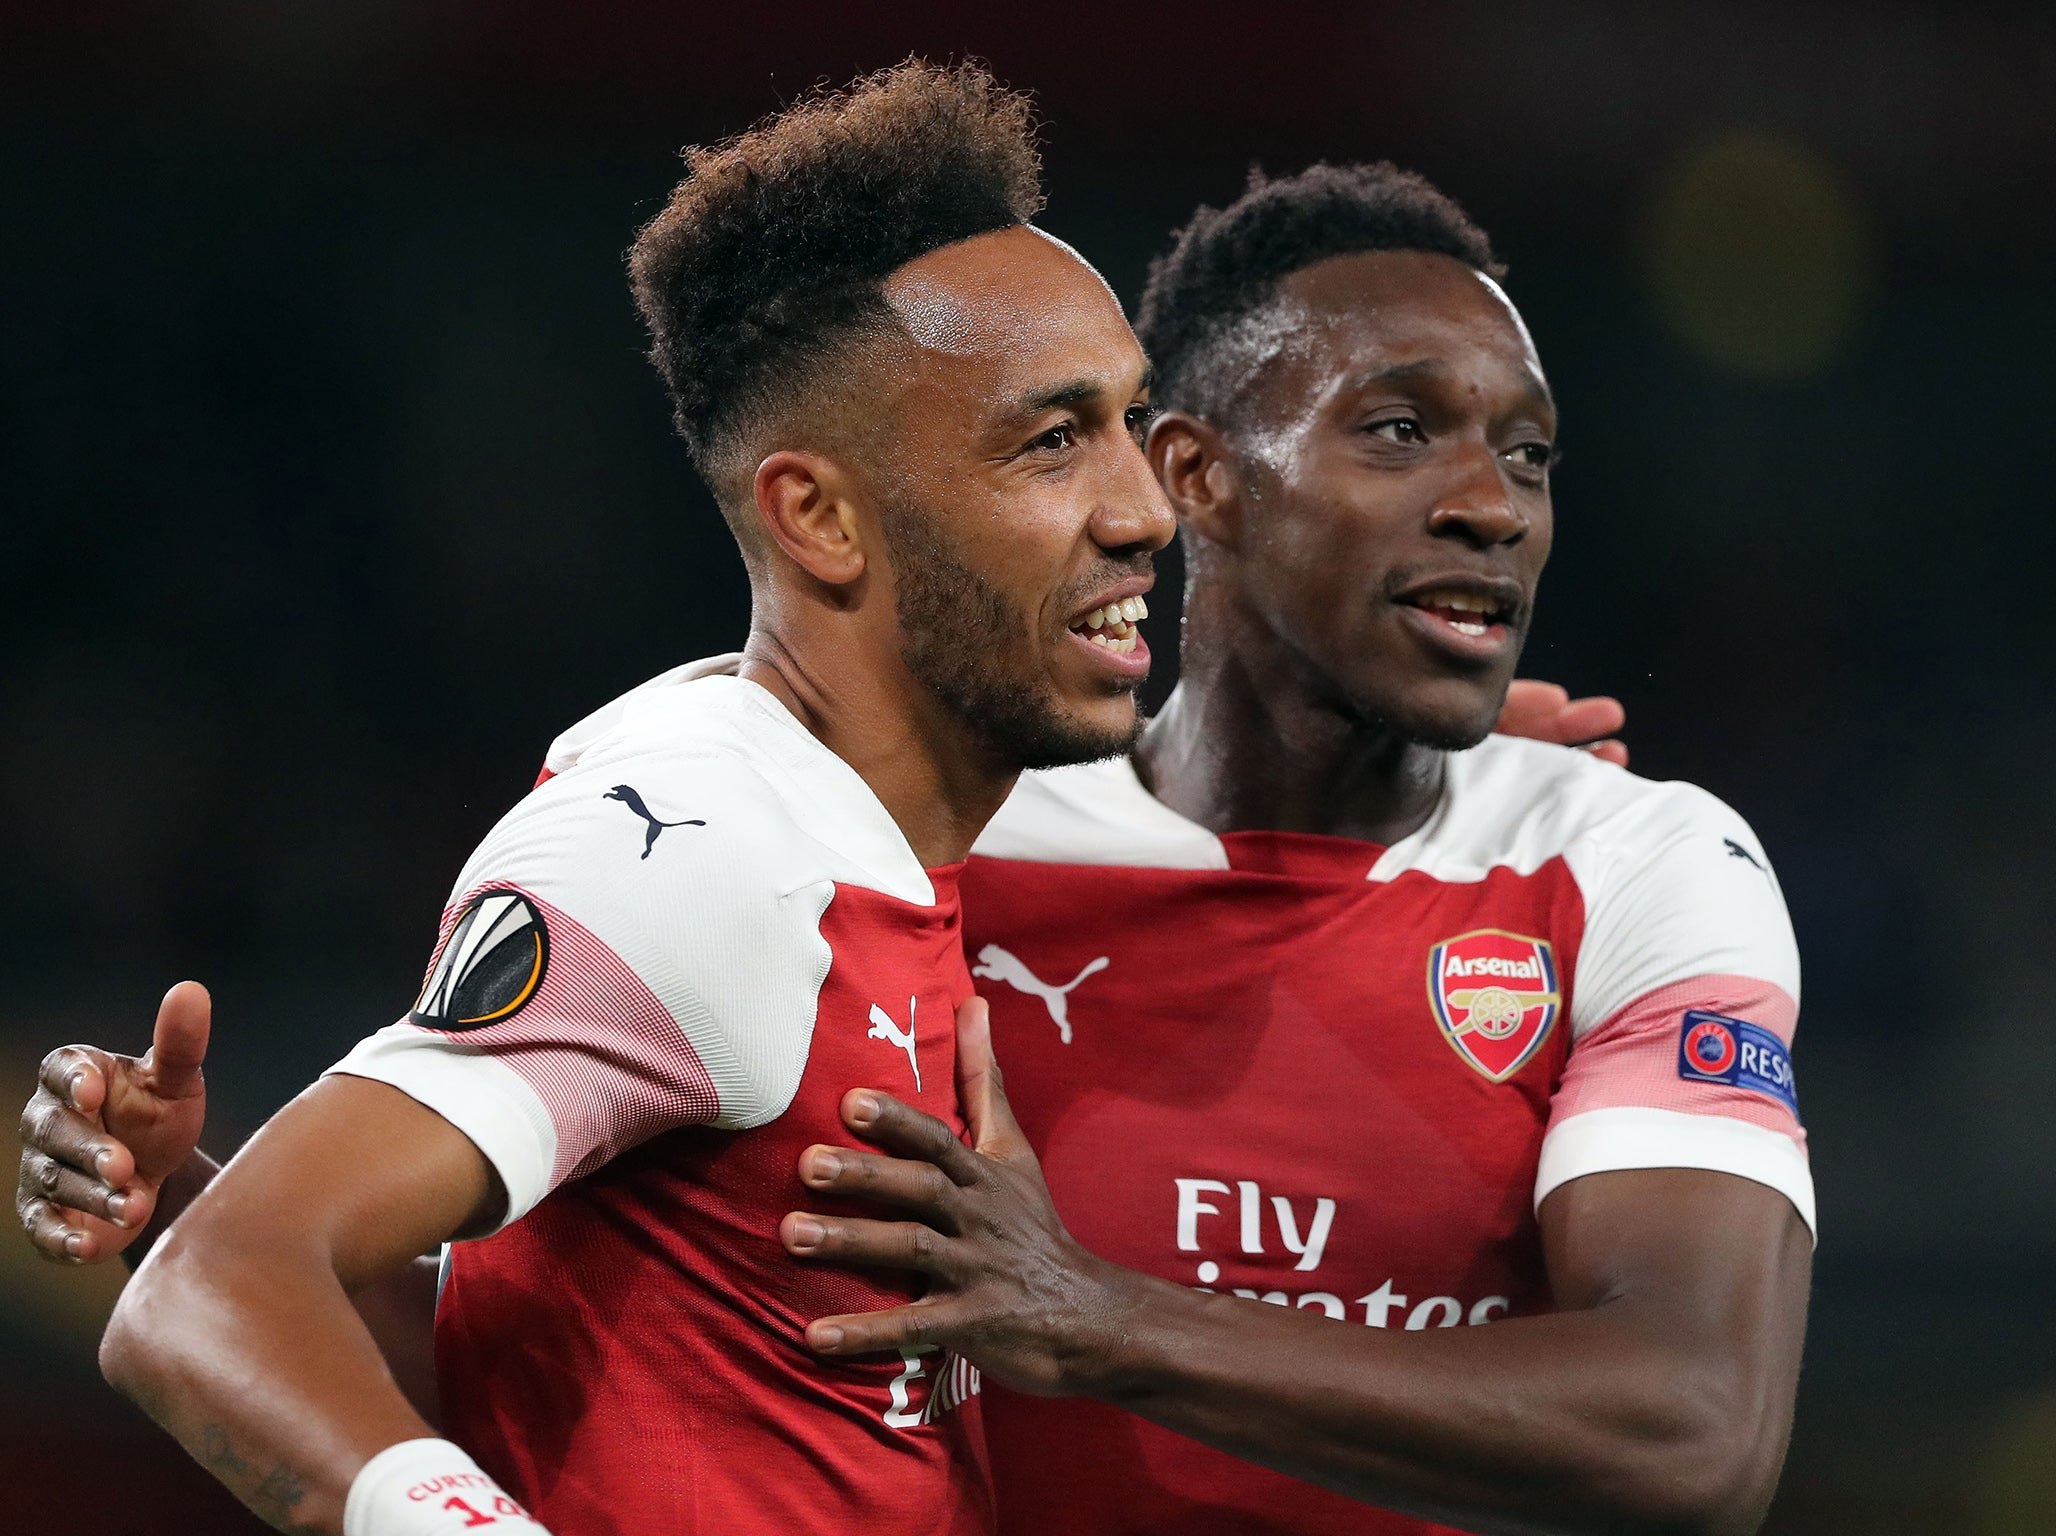 Arsenal vs Everton – Premier League preview: How to watch online, when is it, predictions, odds and more